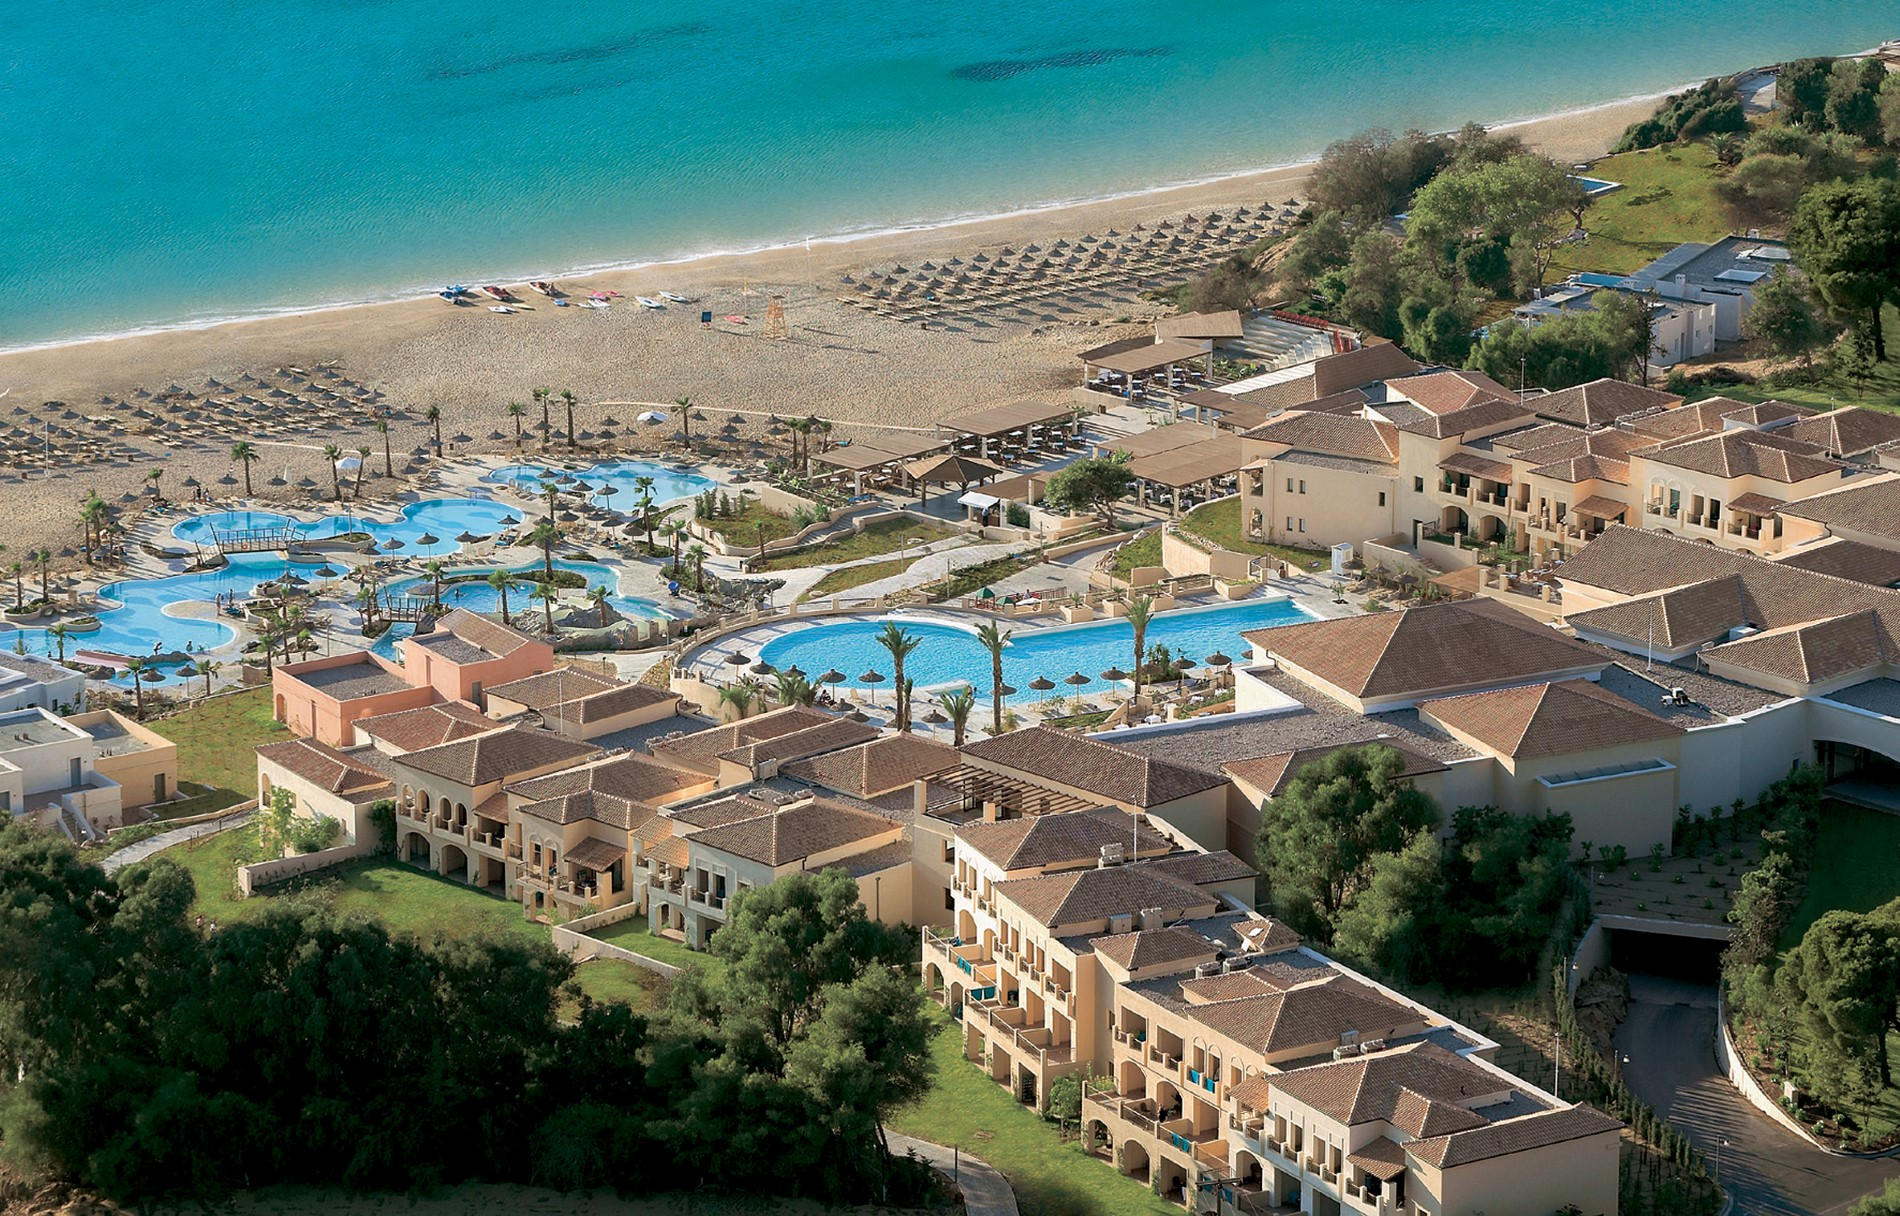 Grecotel Olympia Riviera, Luxury hotel complex, Killini, Peloponnese 2004 *in cooperation with W.A.T.G.